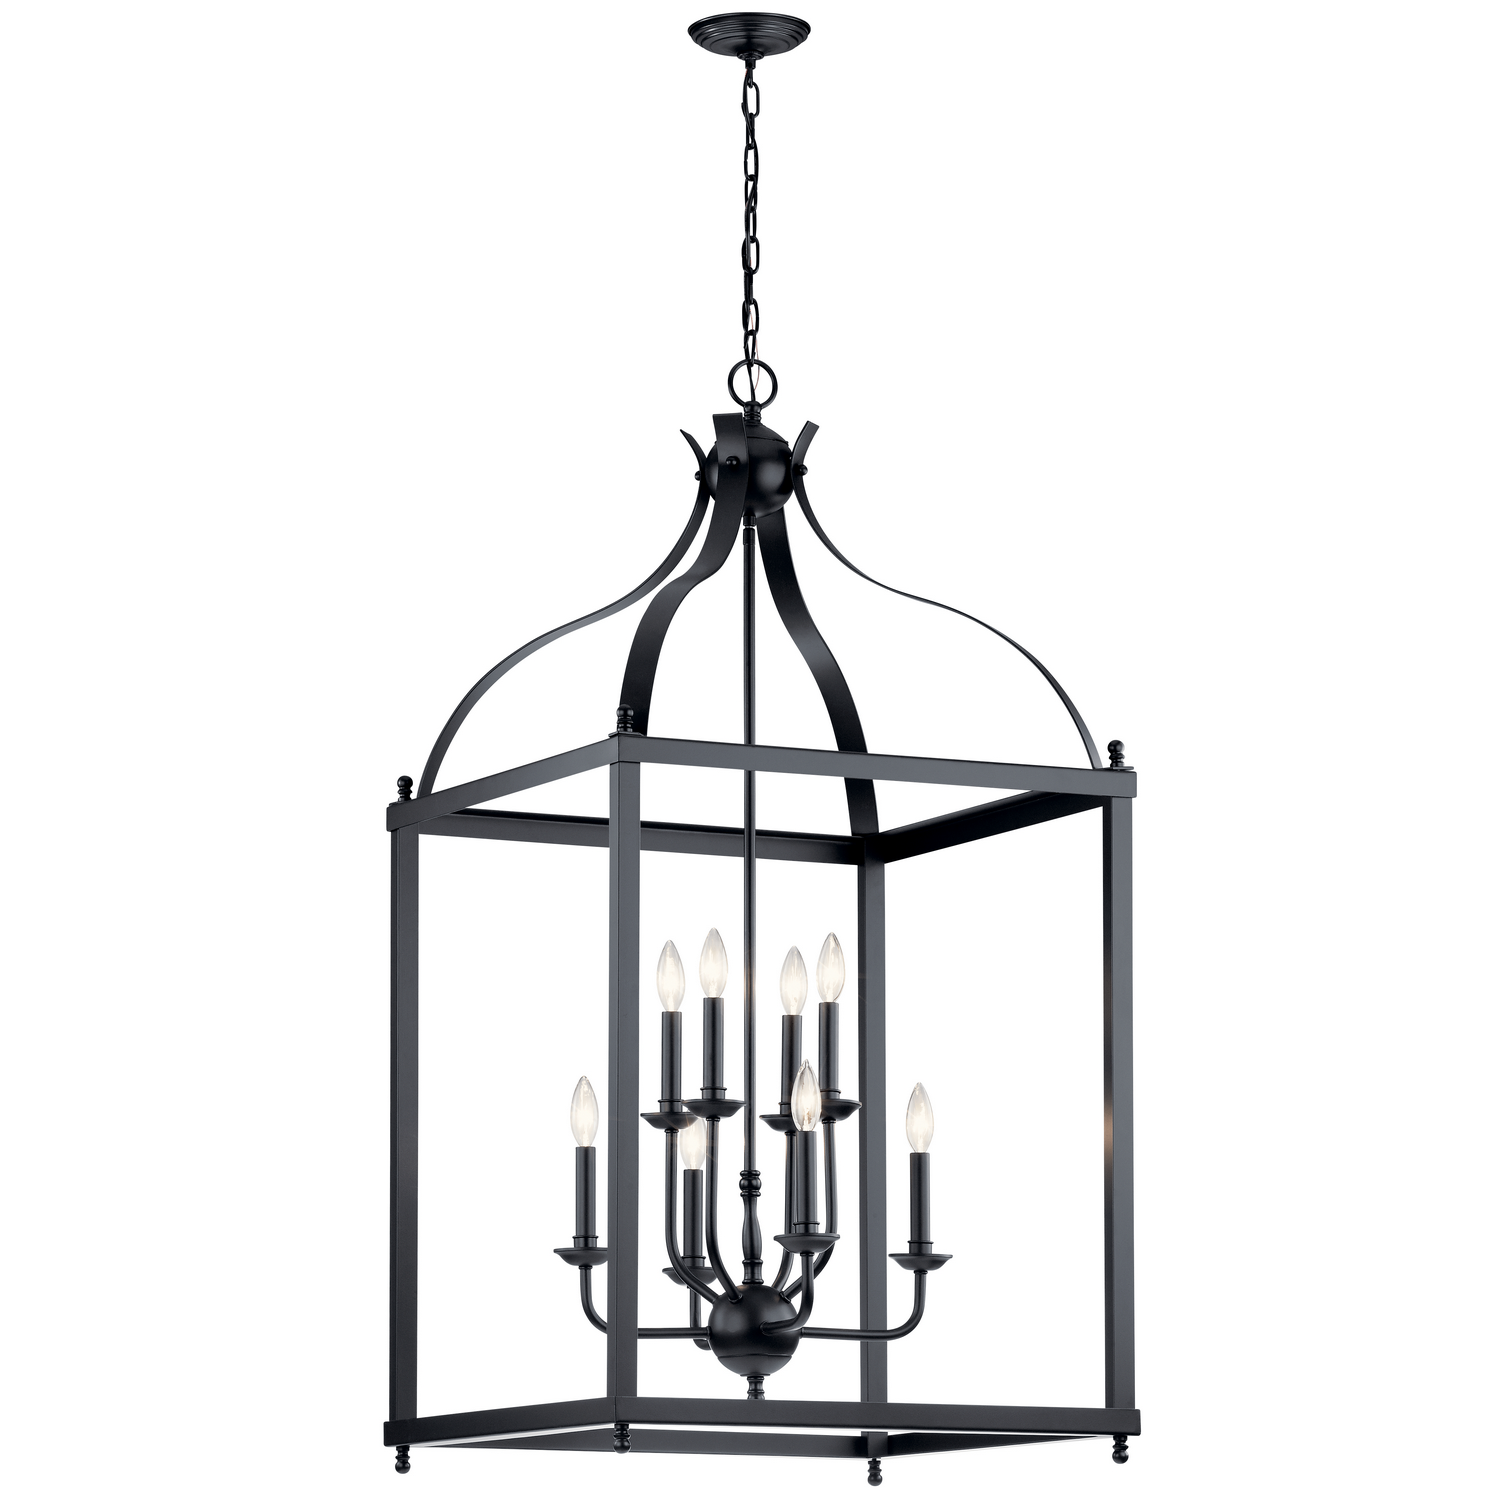 Eight Light Foyer Pendant from the Larkin collection by Kichler 42591BK